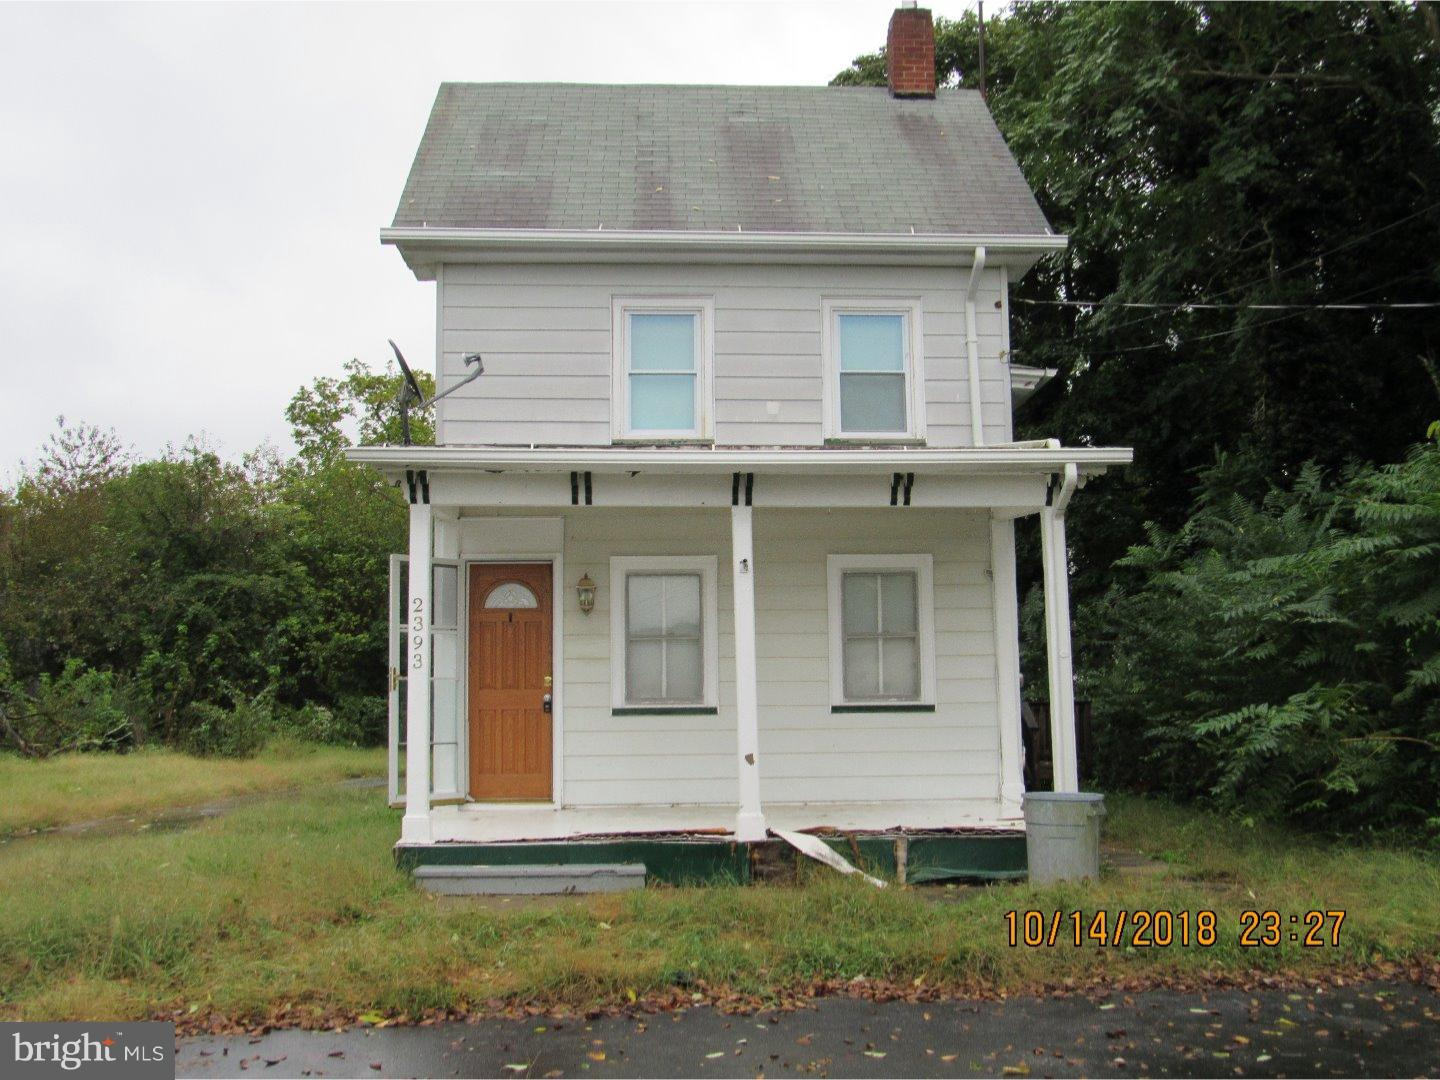 Single Family Home for Sale at 2393 MEMORIAL Avenue Port Norris, New Jersey 08349 United States